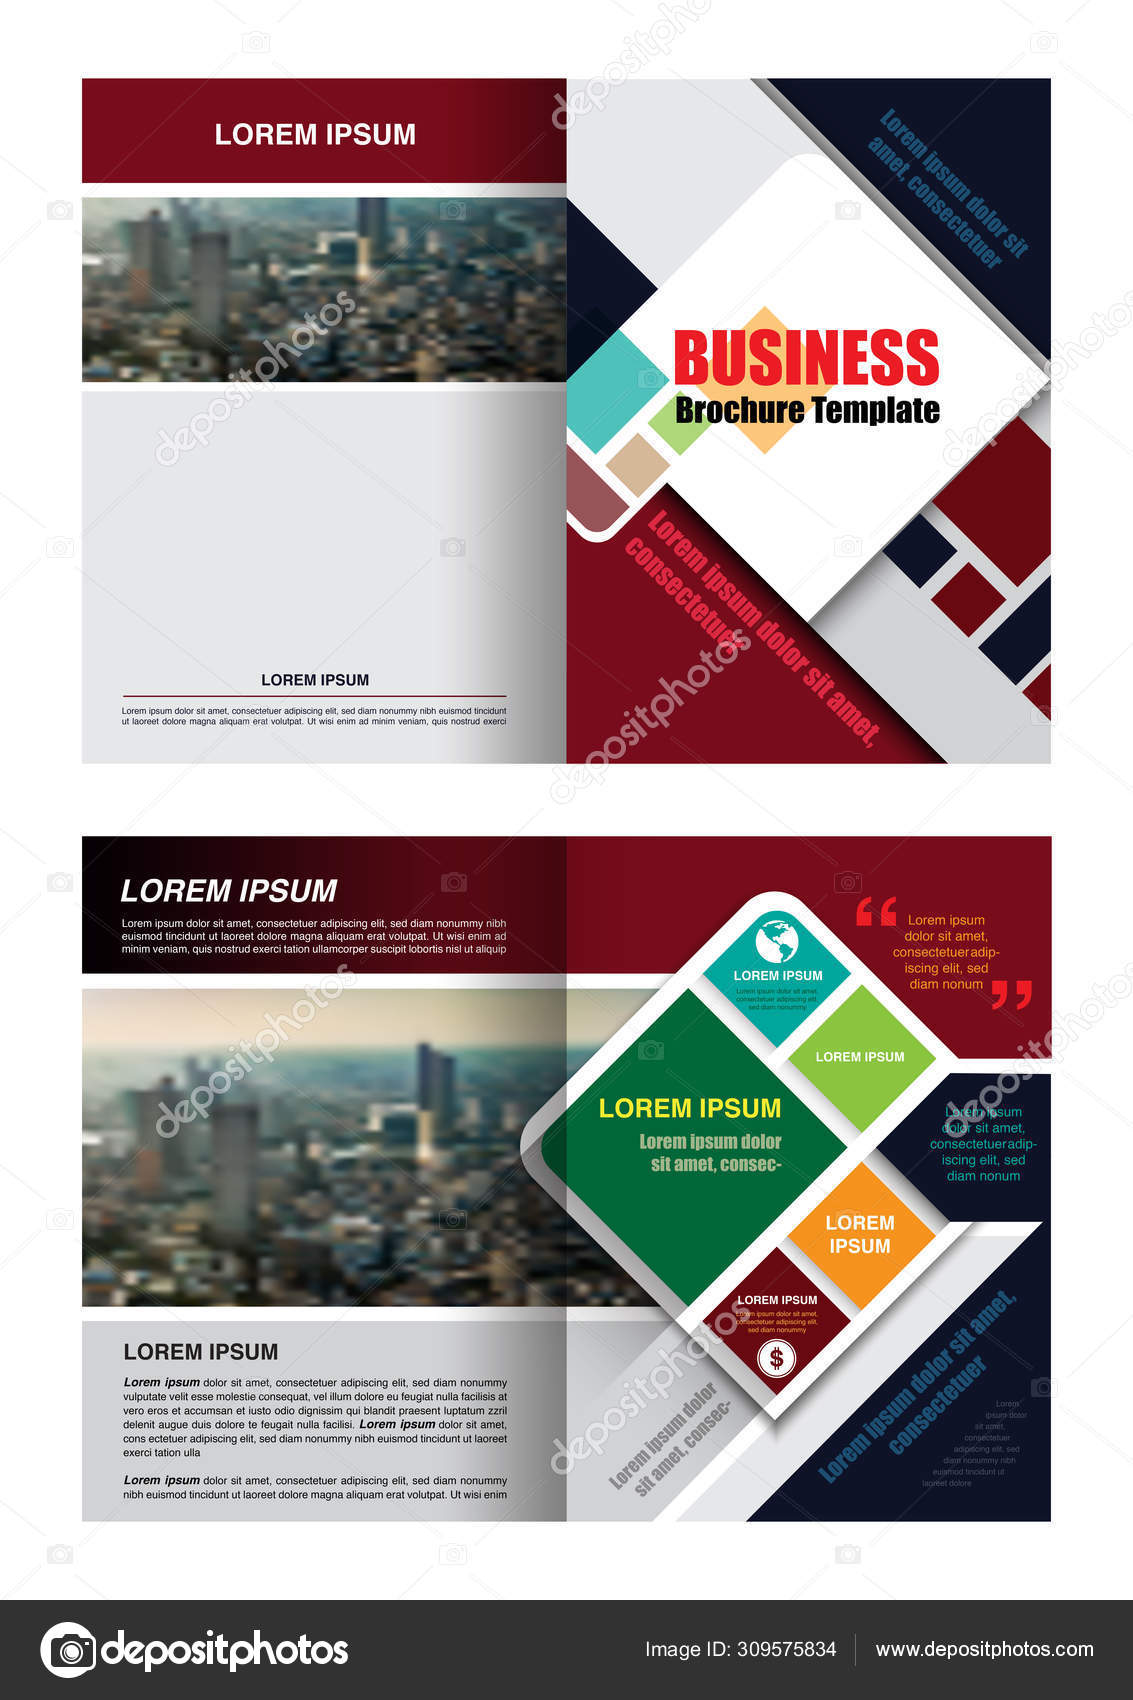 Business Brochure Template Graphic Scale Colorful Infographic Design Element Red Stock Vector C Fotoslaz 309575834